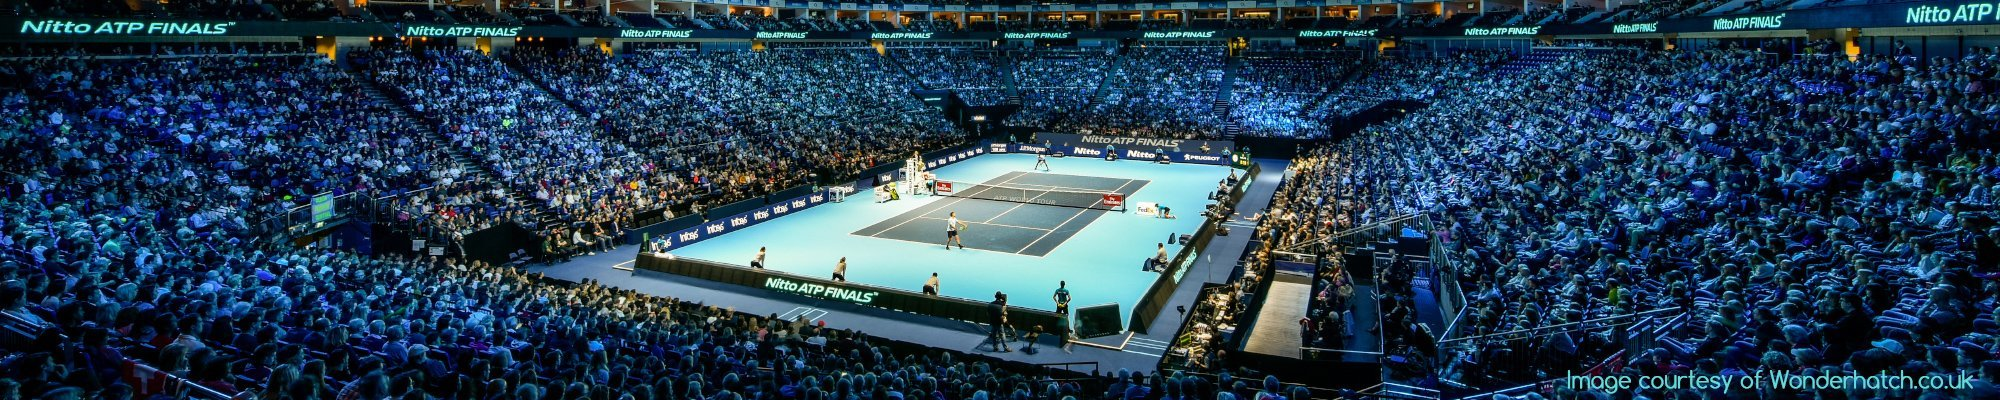 2018 Nitto ATP Finals NOV 11th